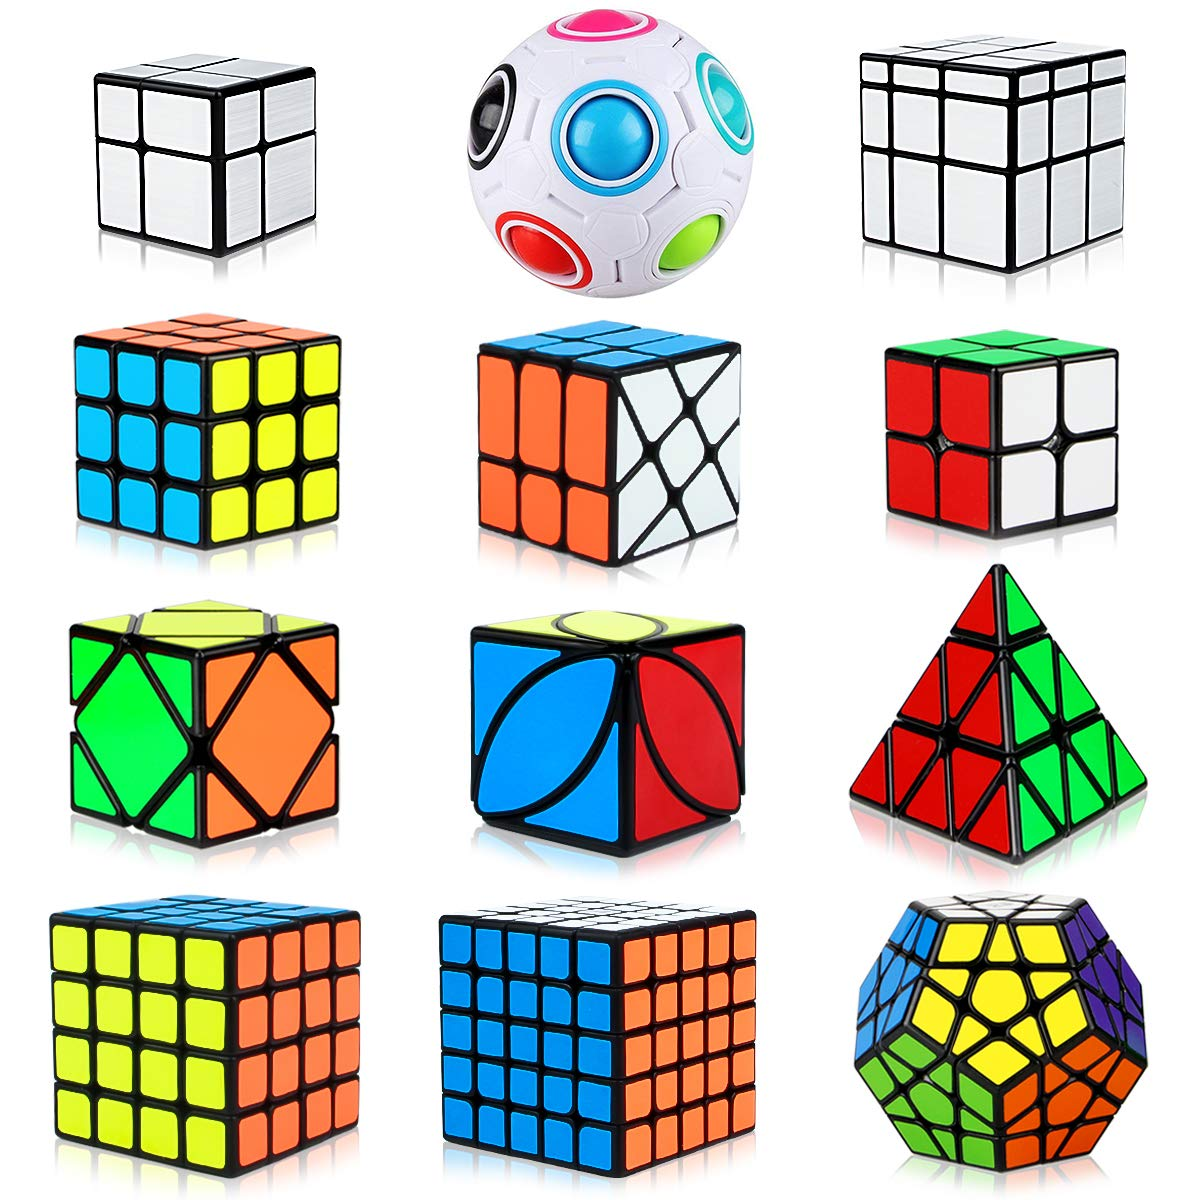 Dreampark Speed Cube Set, 12 Pack Cube Bundle Pyramid Cube 2x2 3x3 4x4 5x5 Megaminx Skew Ivy Mirror Cube Magic Rainbow Ball Smooth Sticker Puzzle Cubes Collection for Kids by Dreampark